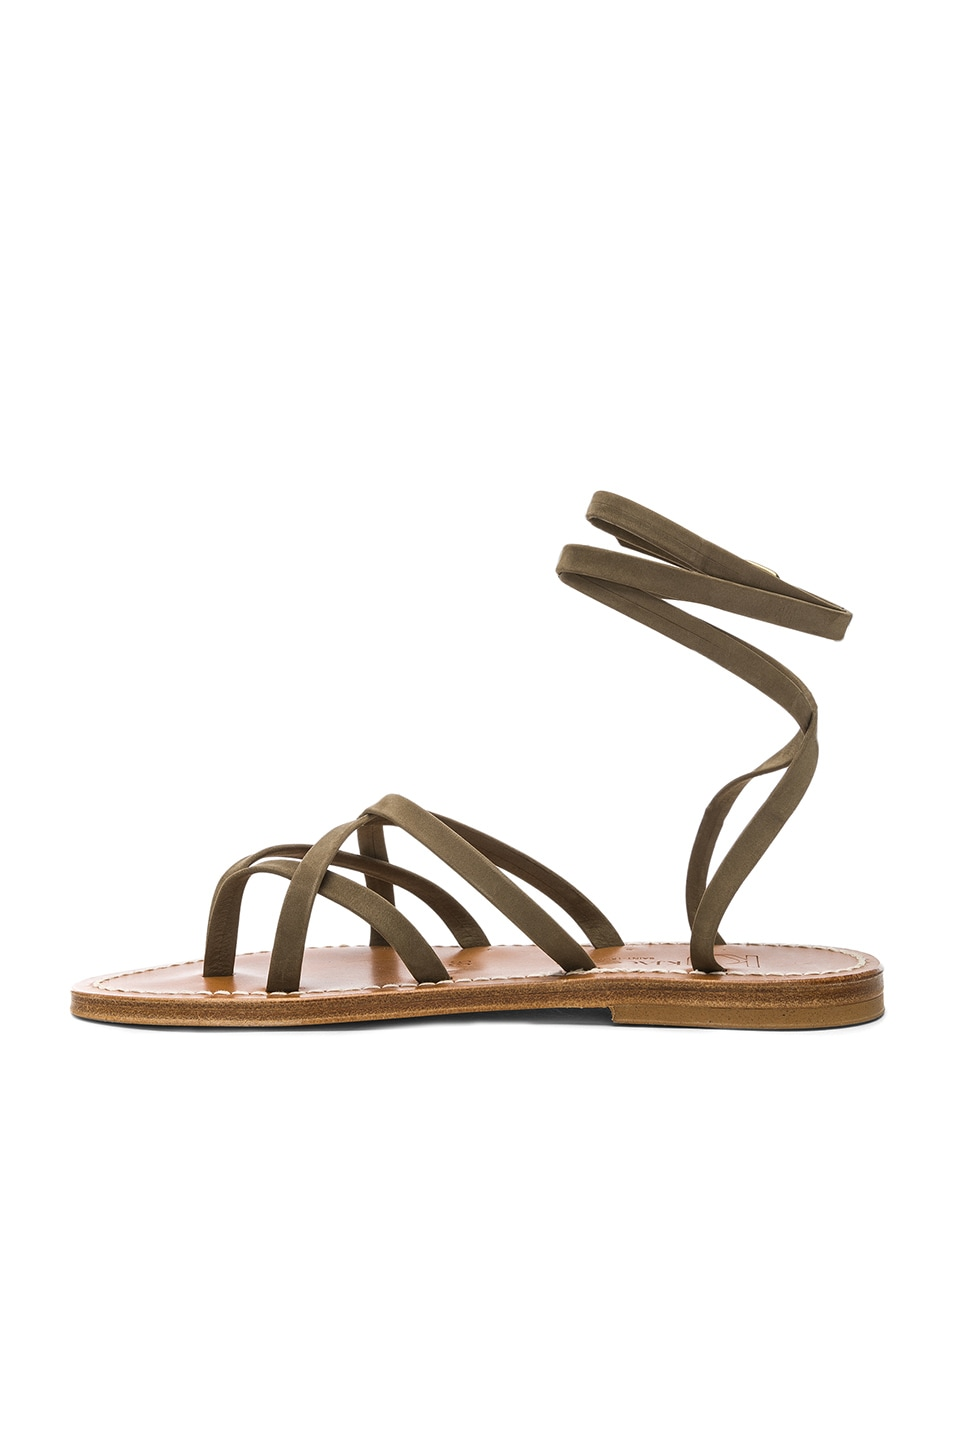 Image 5 of K Jacques Zenobie Sandal in Nubuck Kaki